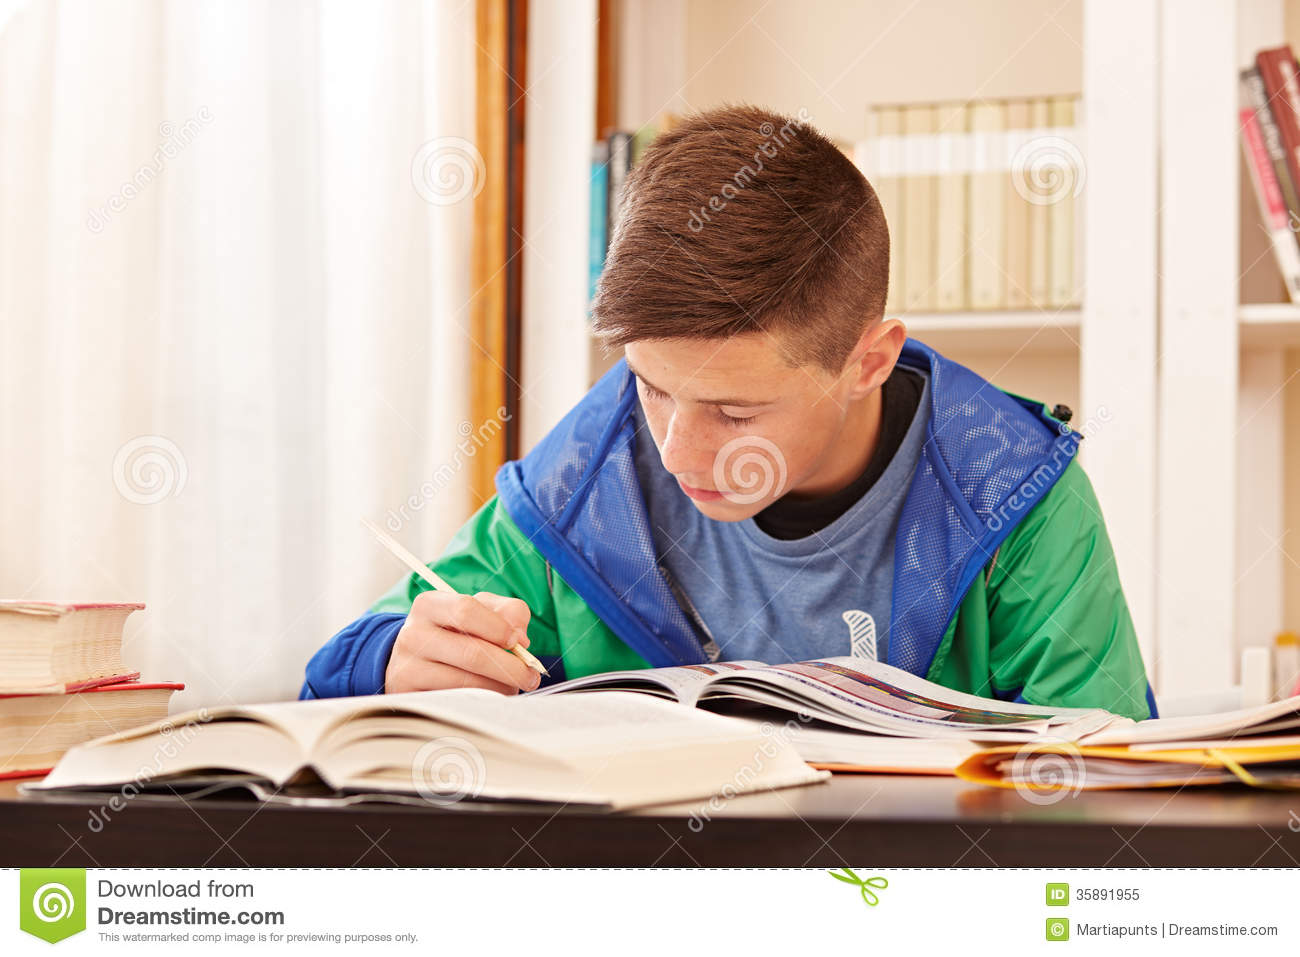 male teenager concentrated doing homework royalty free student writing at desk clipart student writing at desk clipart